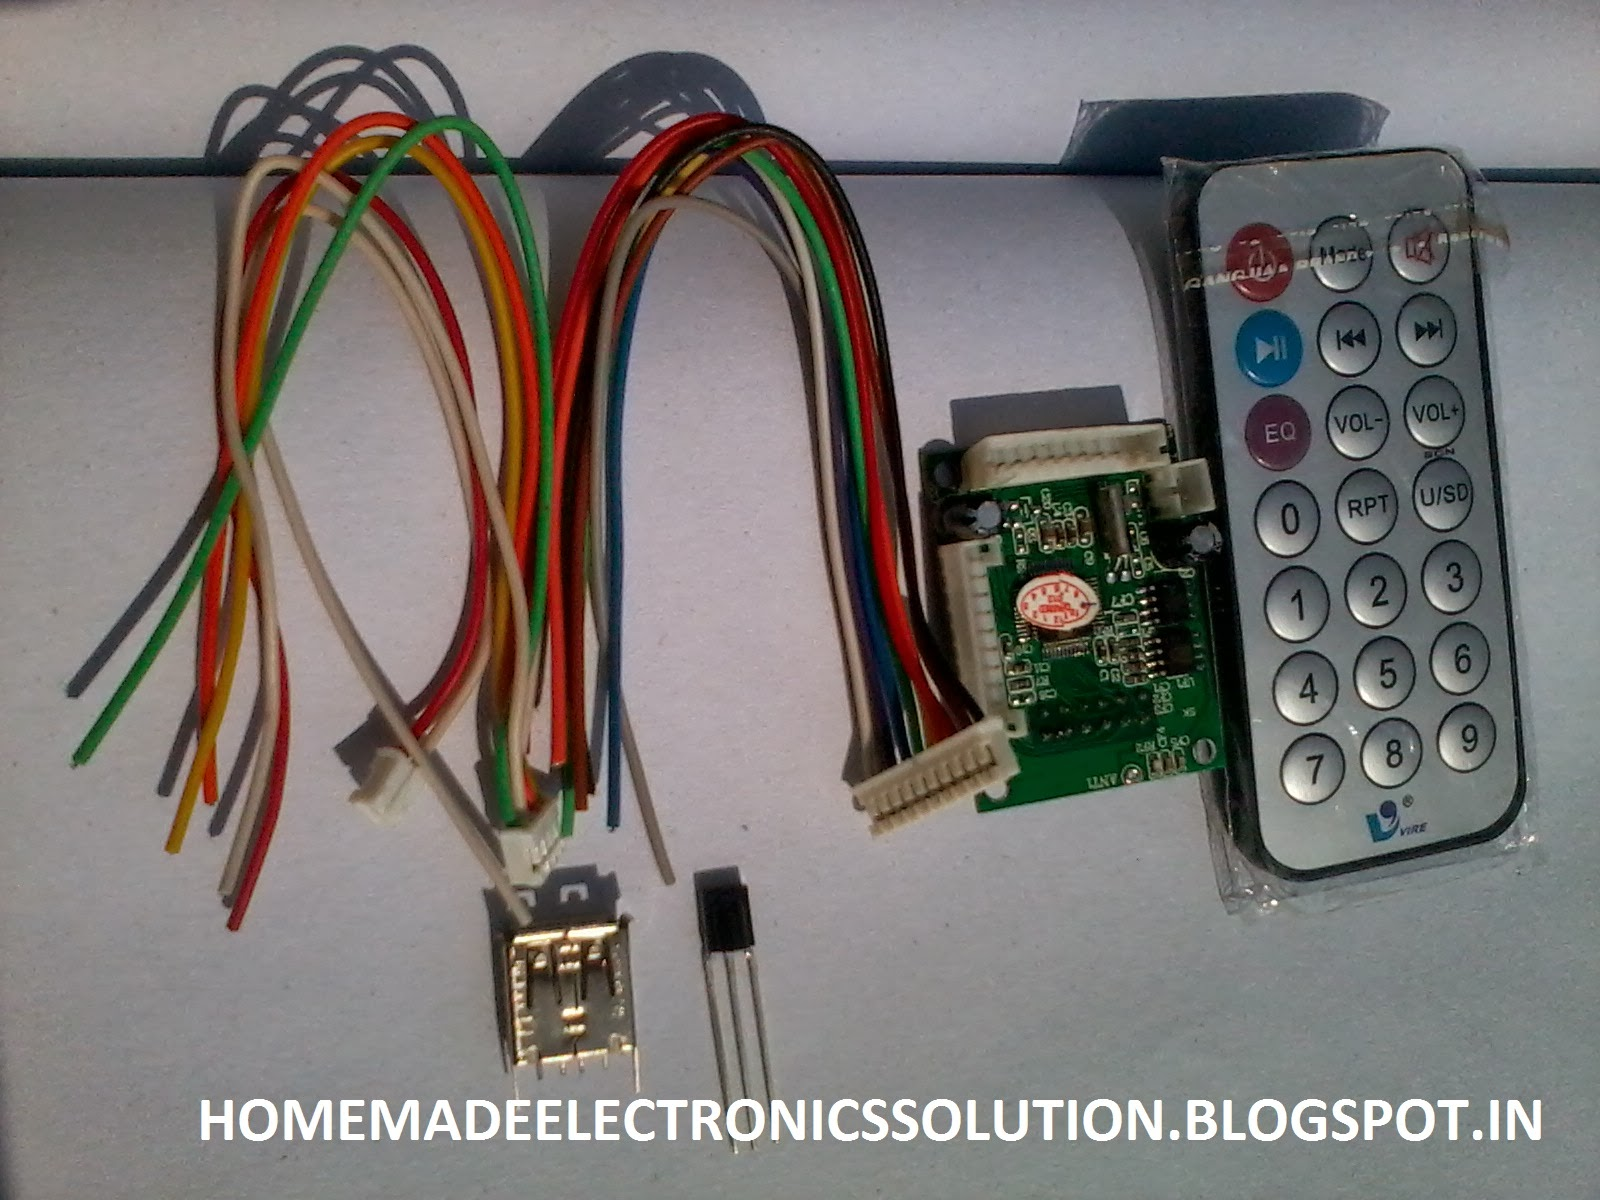 Digital Mp3 Usb Fm Kit Set Up Electronics Home Circuits Homemade Car Audio Amplifier Circuit And Explanation Electronic In This Are Completely Ready For Use Just Want A Regulated 5 Volt Power Supply